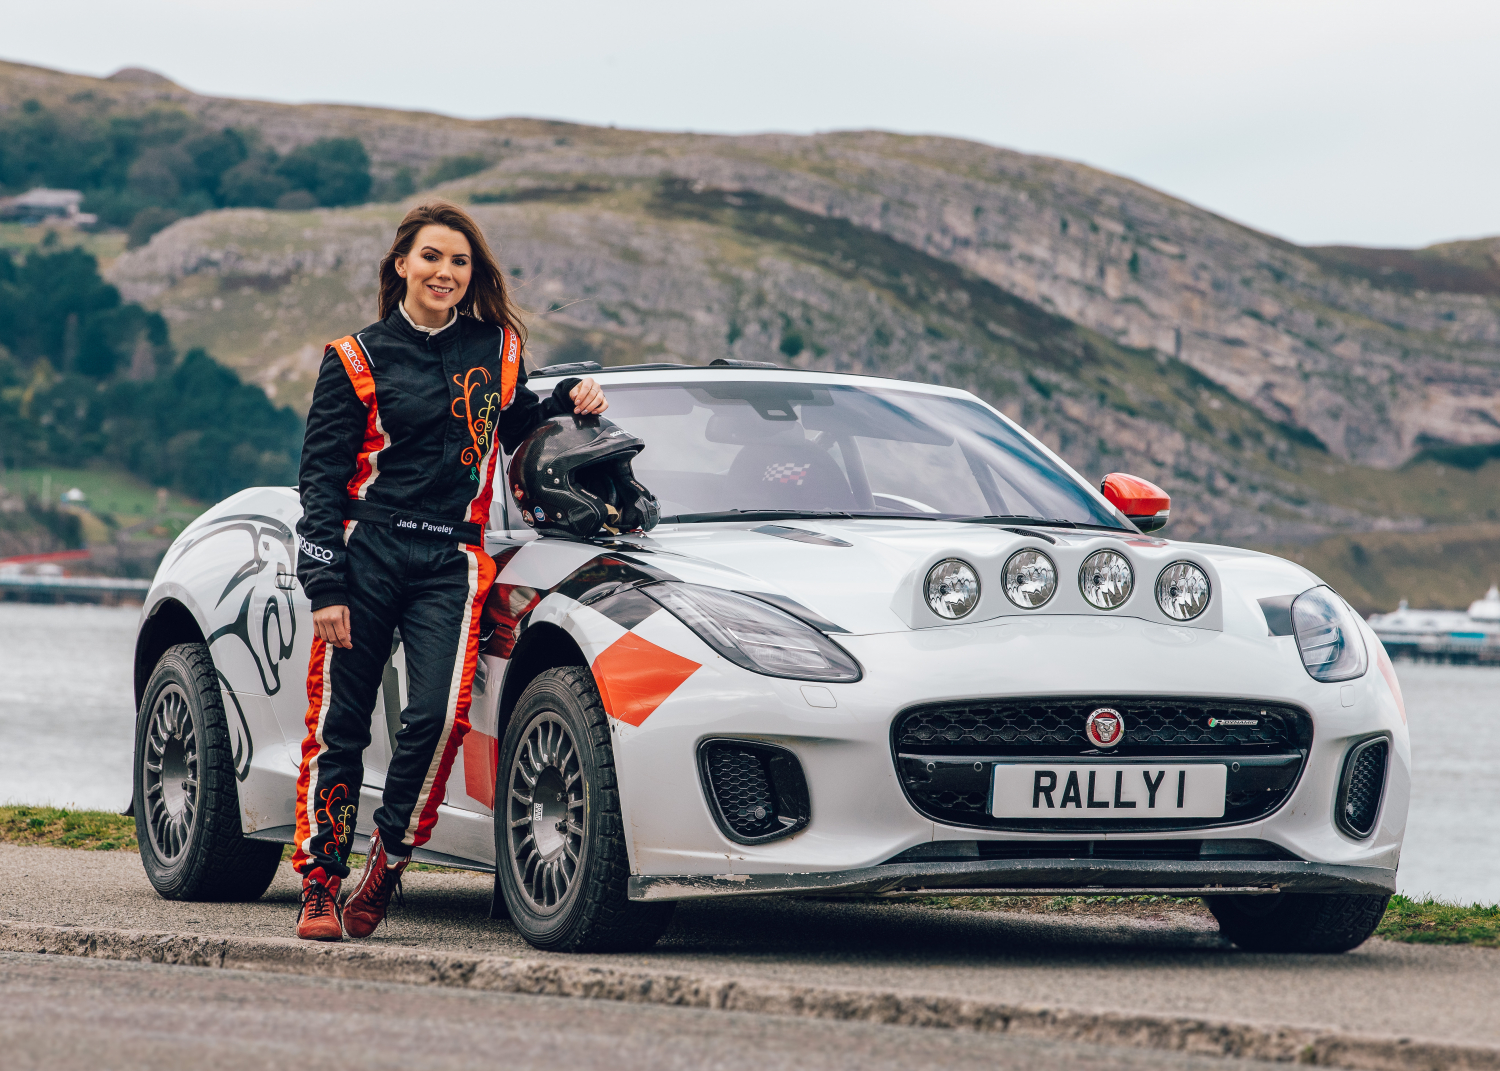 Jaguar F-type Rally Car Makes Final Appearance at 2019 Wales Rally Gb - Image 2